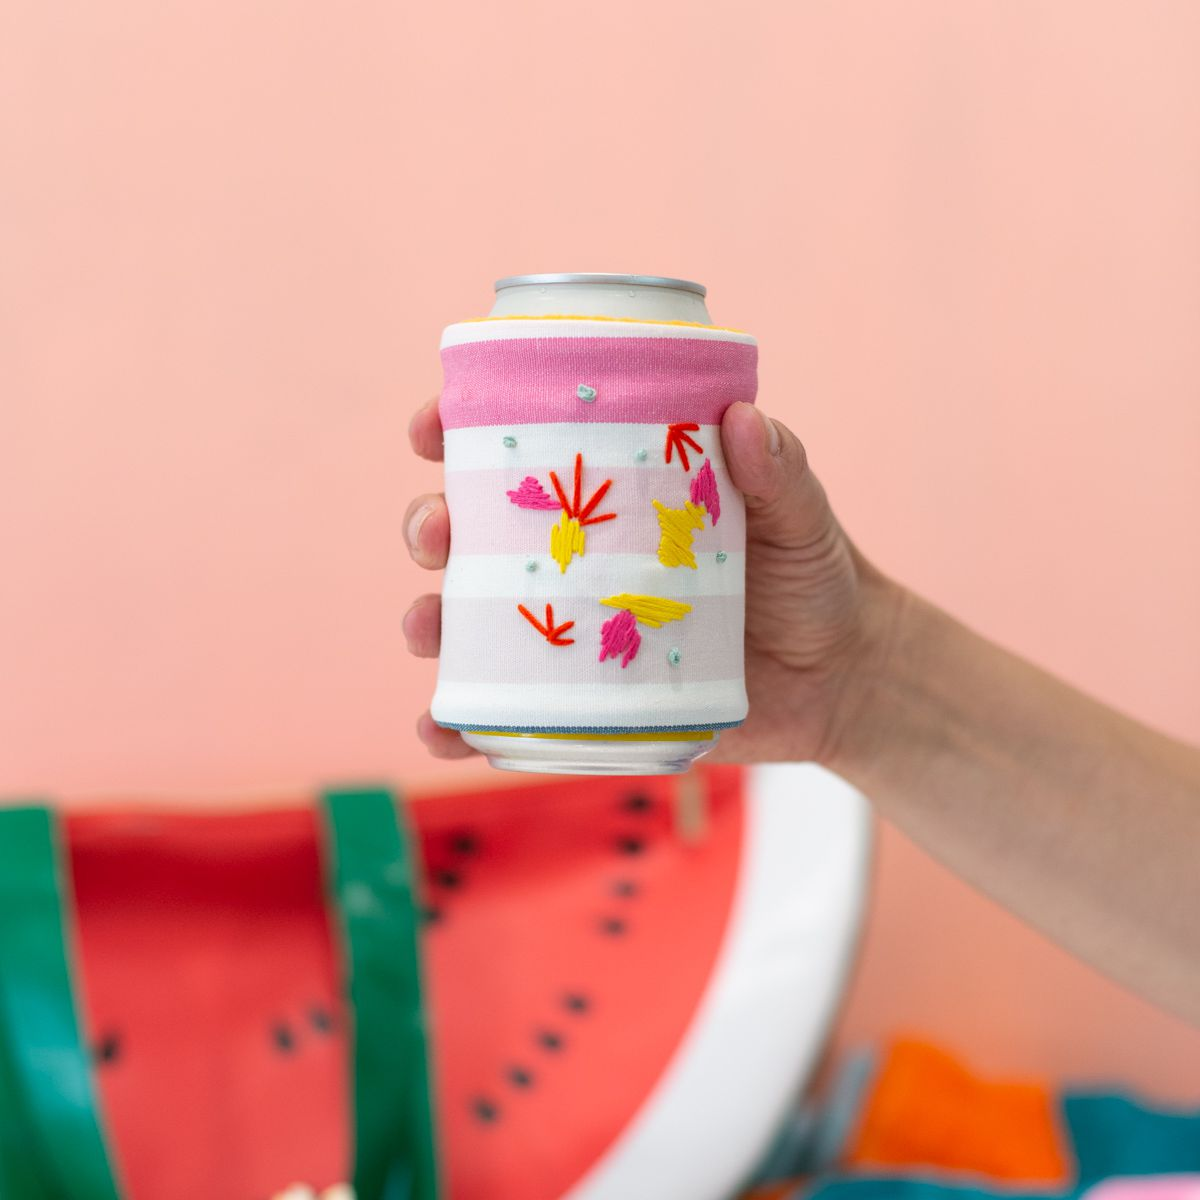 Hand holding a DIY embroidered koozie